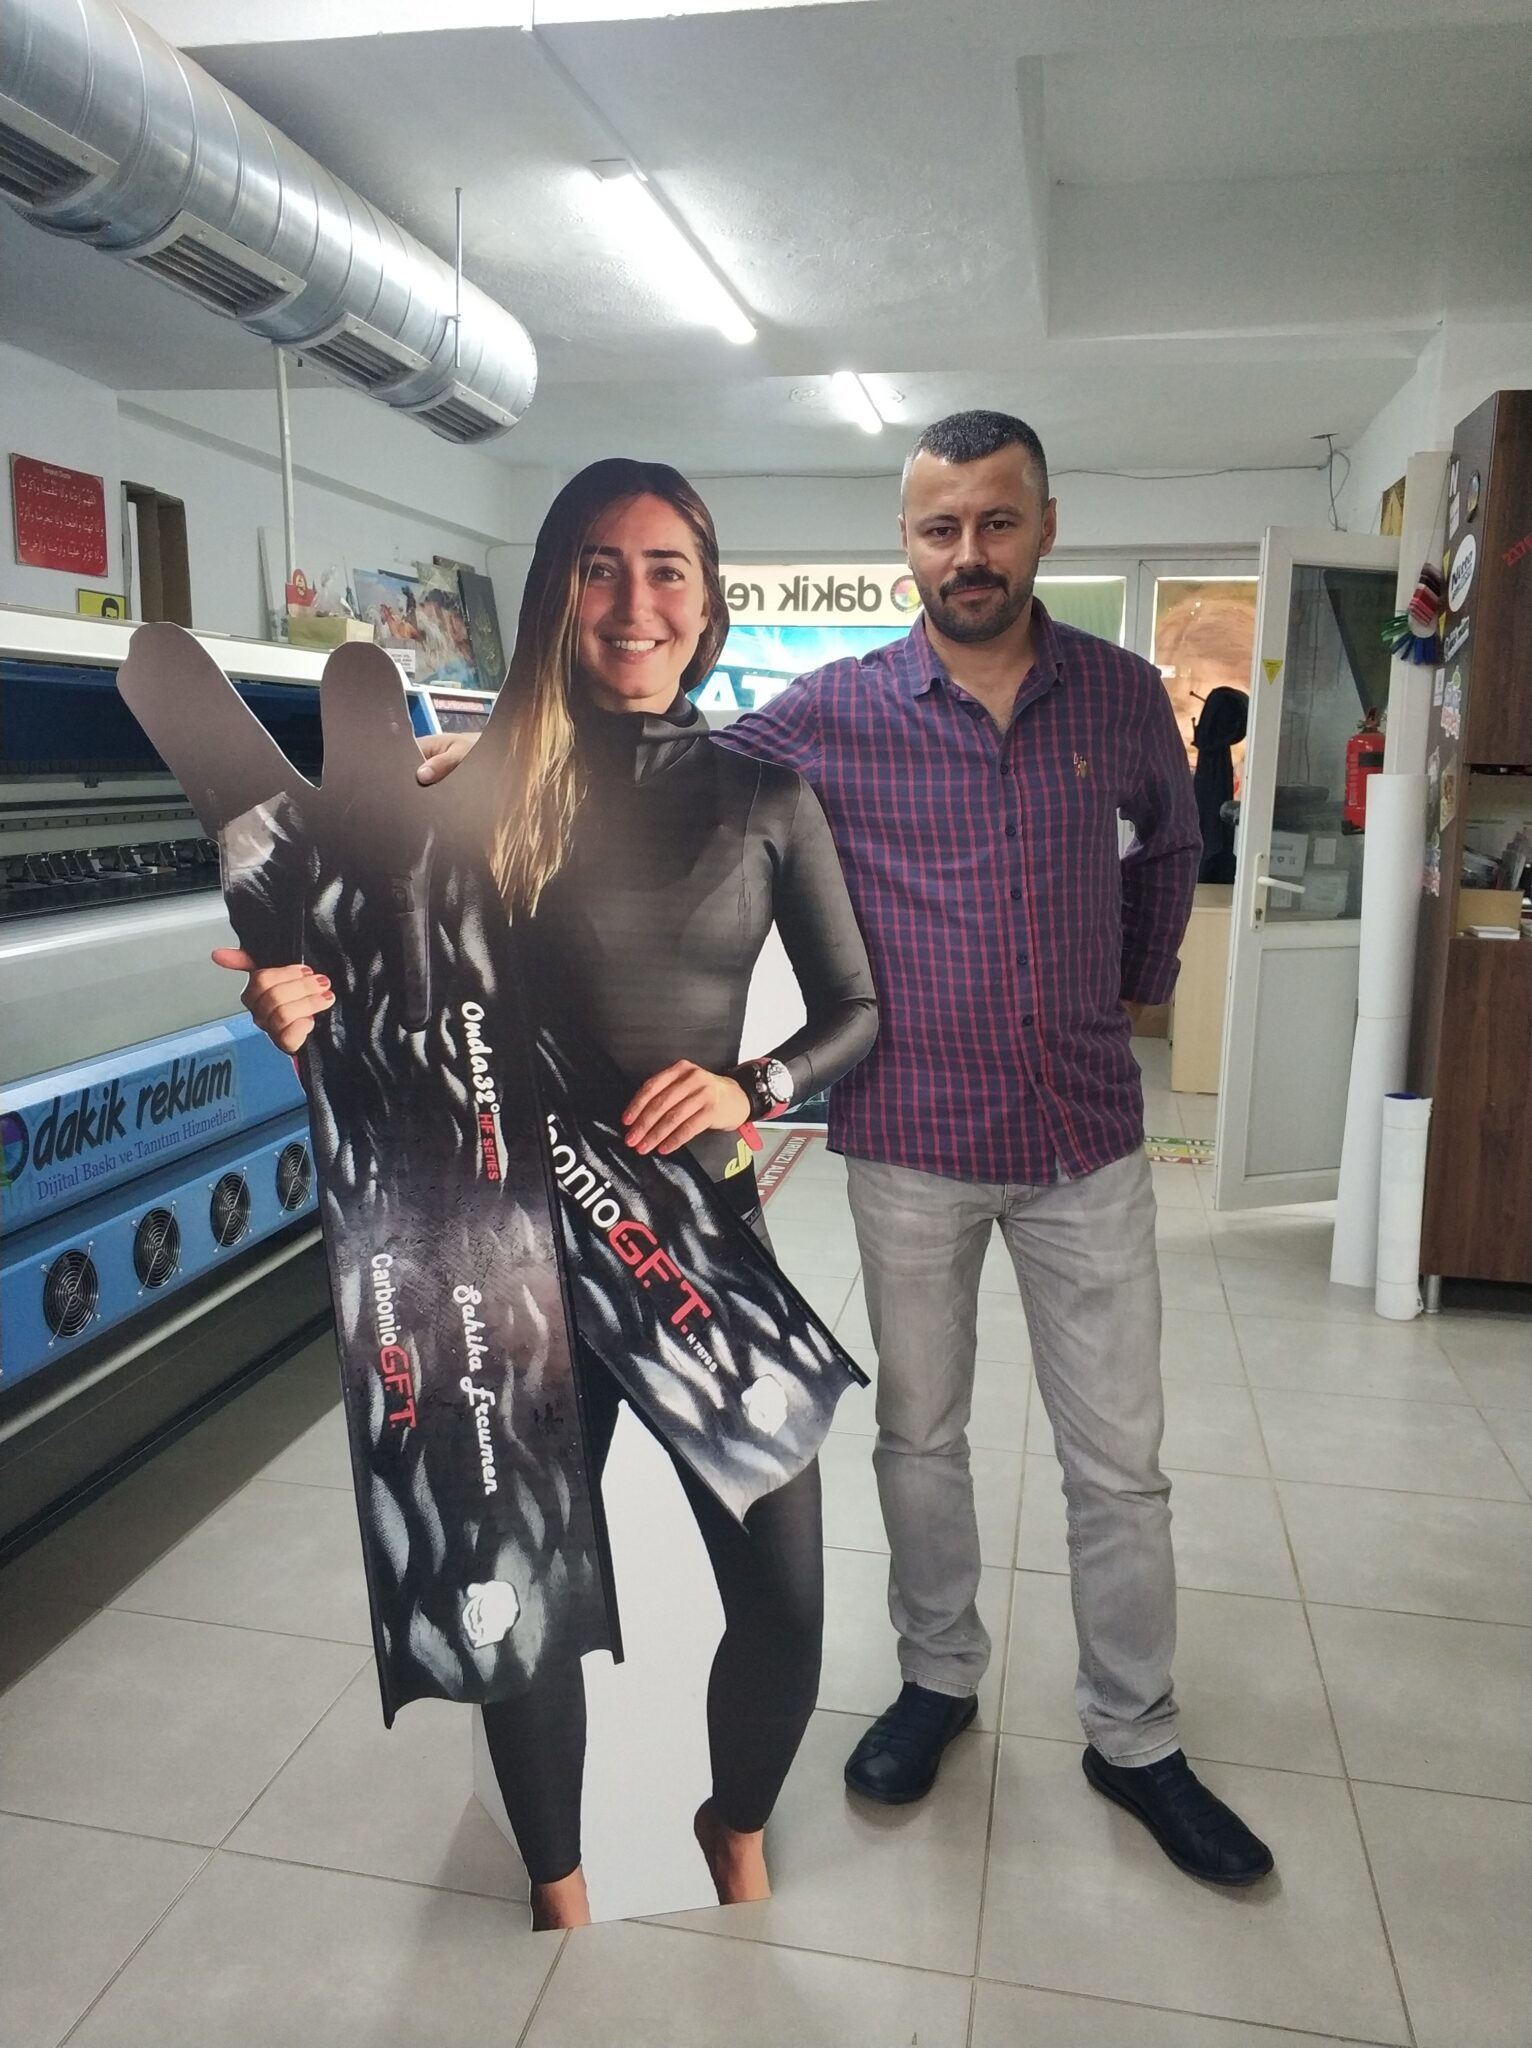 Cut Out Şahika Ercüman